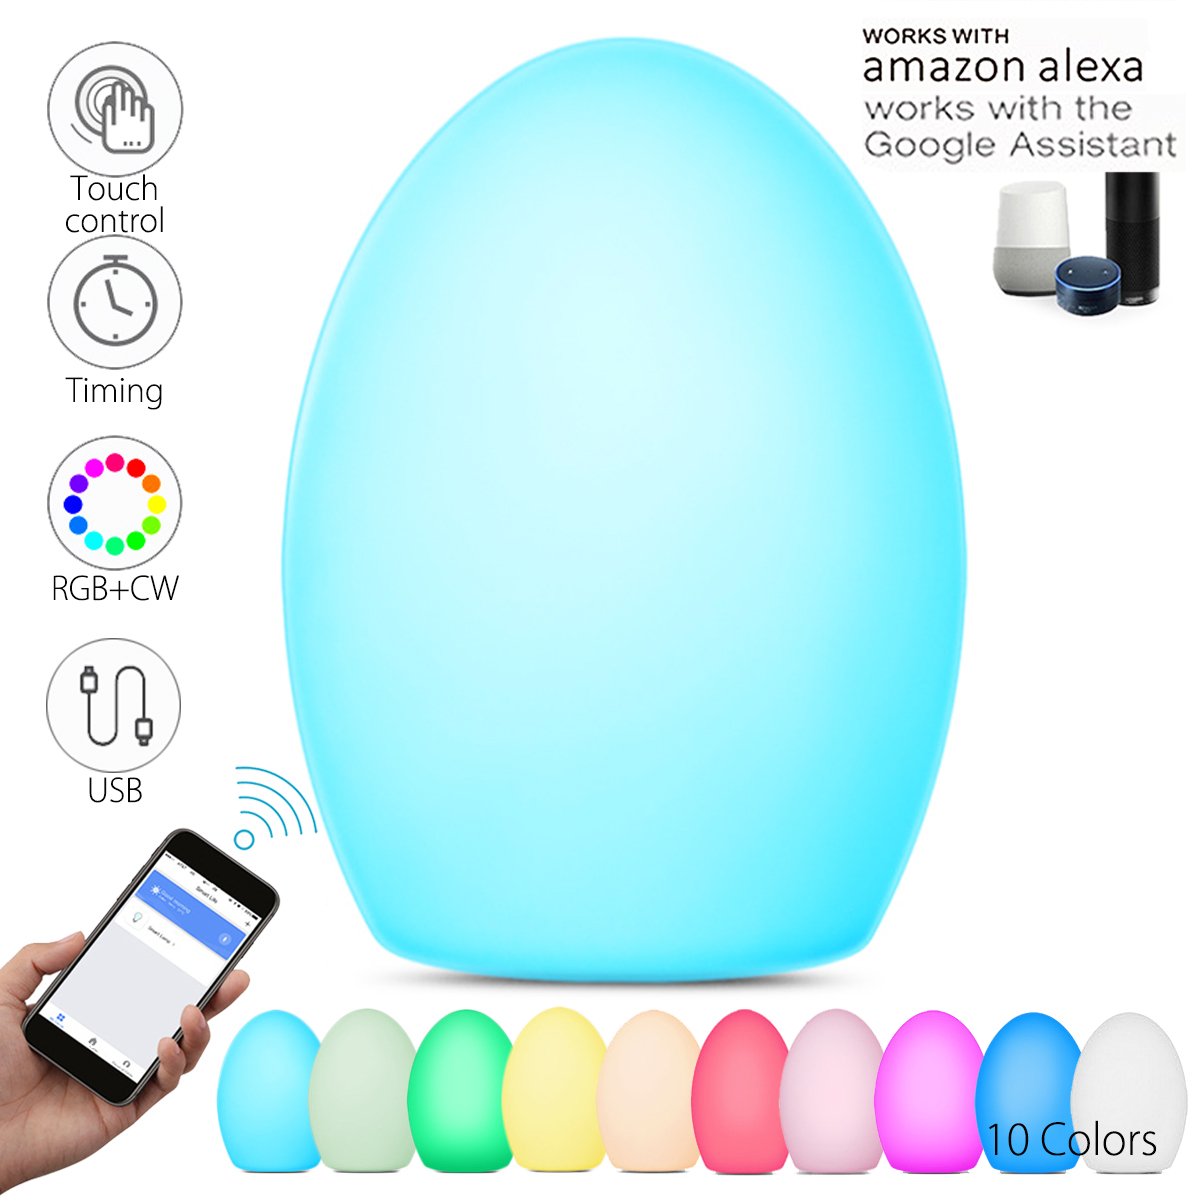 Smuxi LED Night Light WIFI Smart Table Desk Touch Control Night lamp Lighting For Alexa GOOGLE HOME 10 Colors Changing portable mini table lamp humidifier foldable led night light smart touch control led reading light for home office